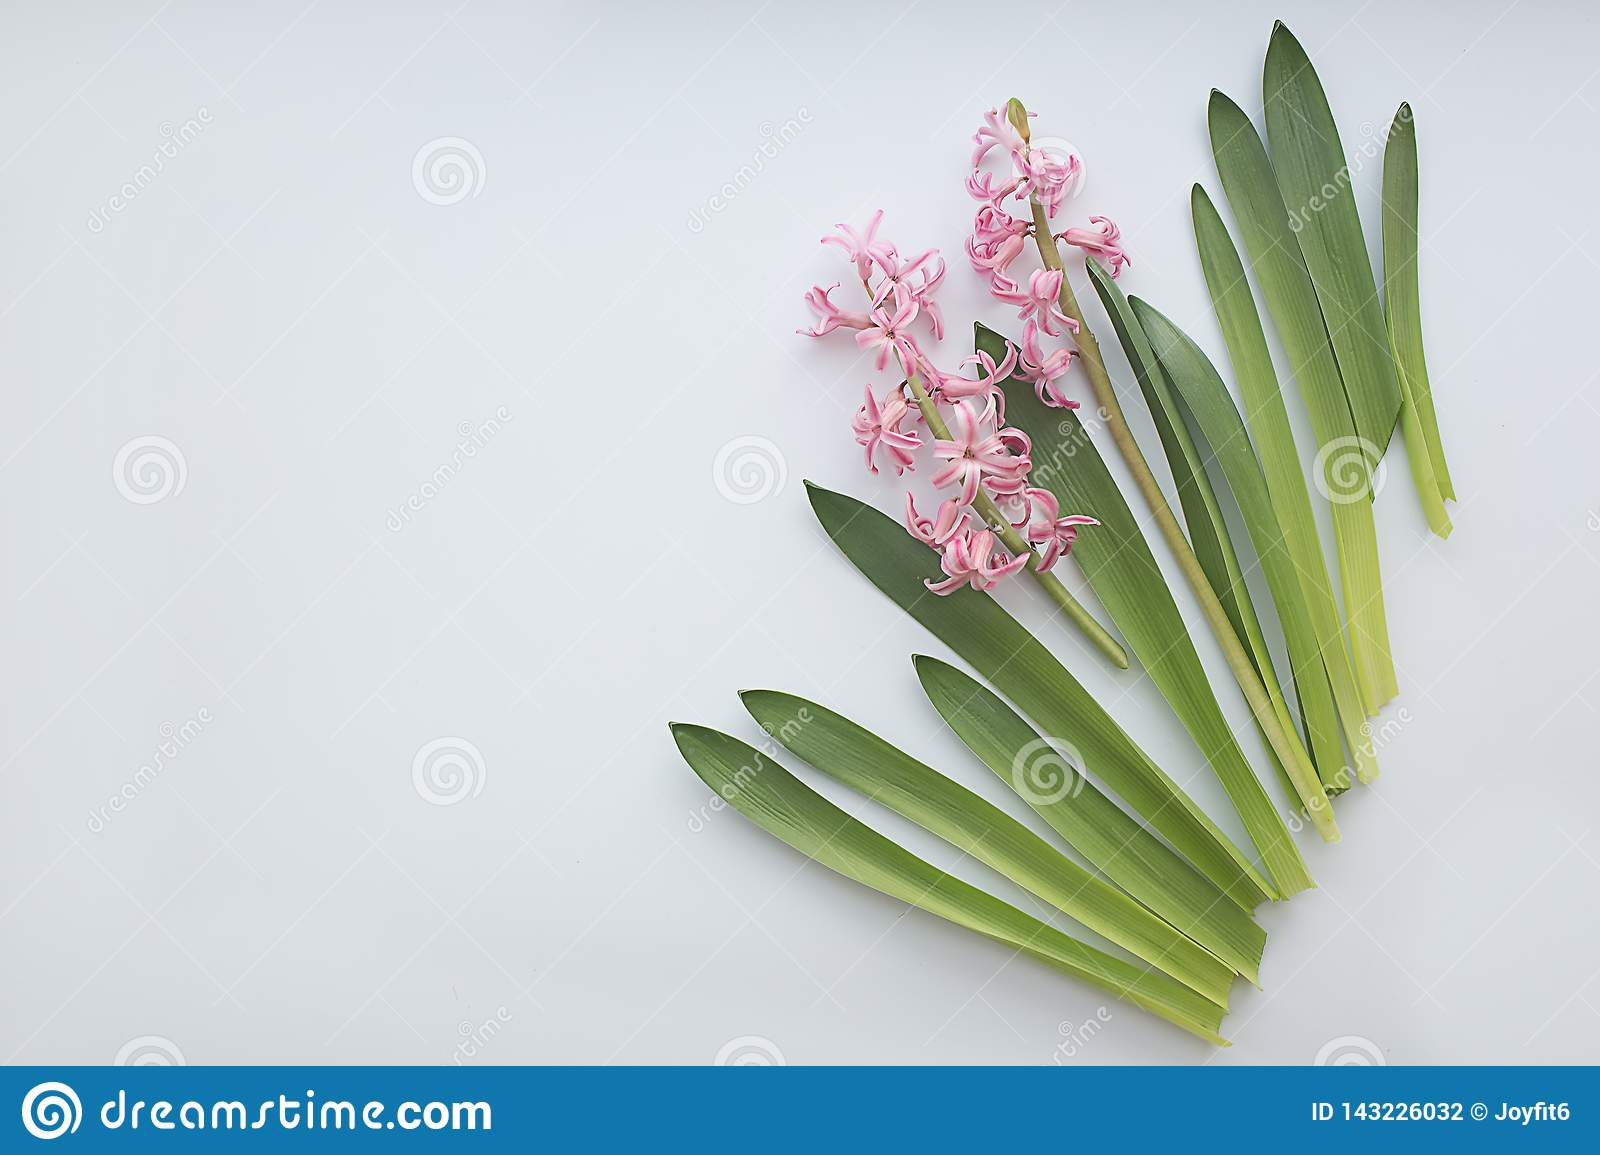 Pink hyacinth flowers with leaves on white background. Flat lay, copy space, top view. Flowers composition